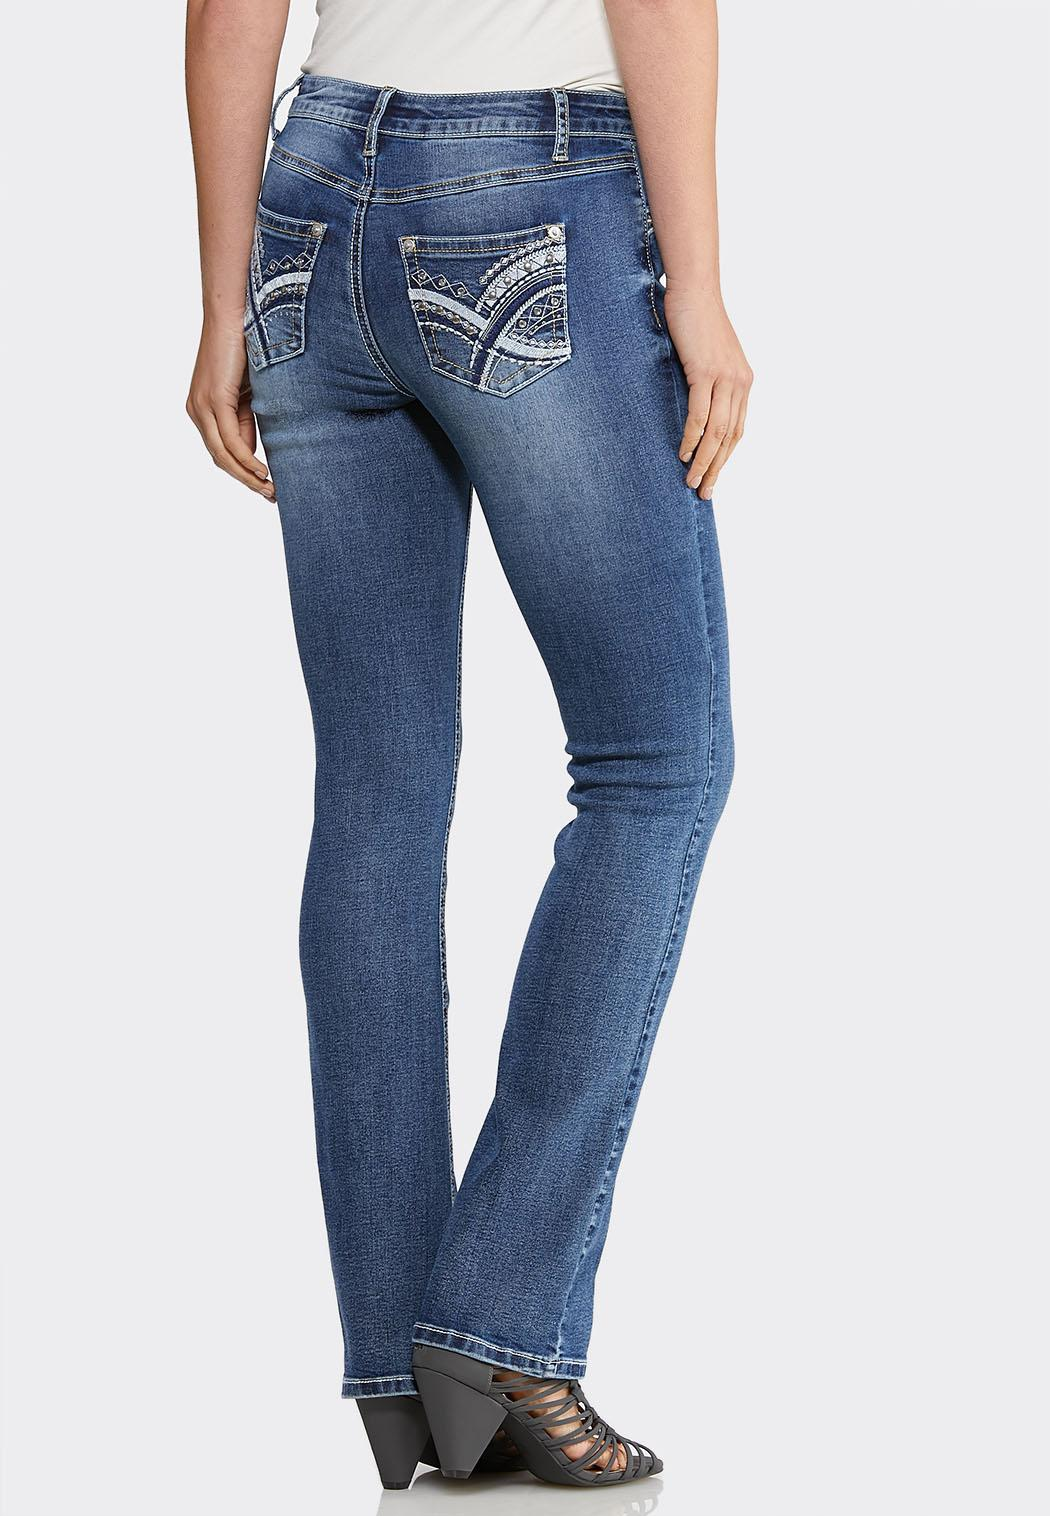 Petite Stitched Embellished Jeans